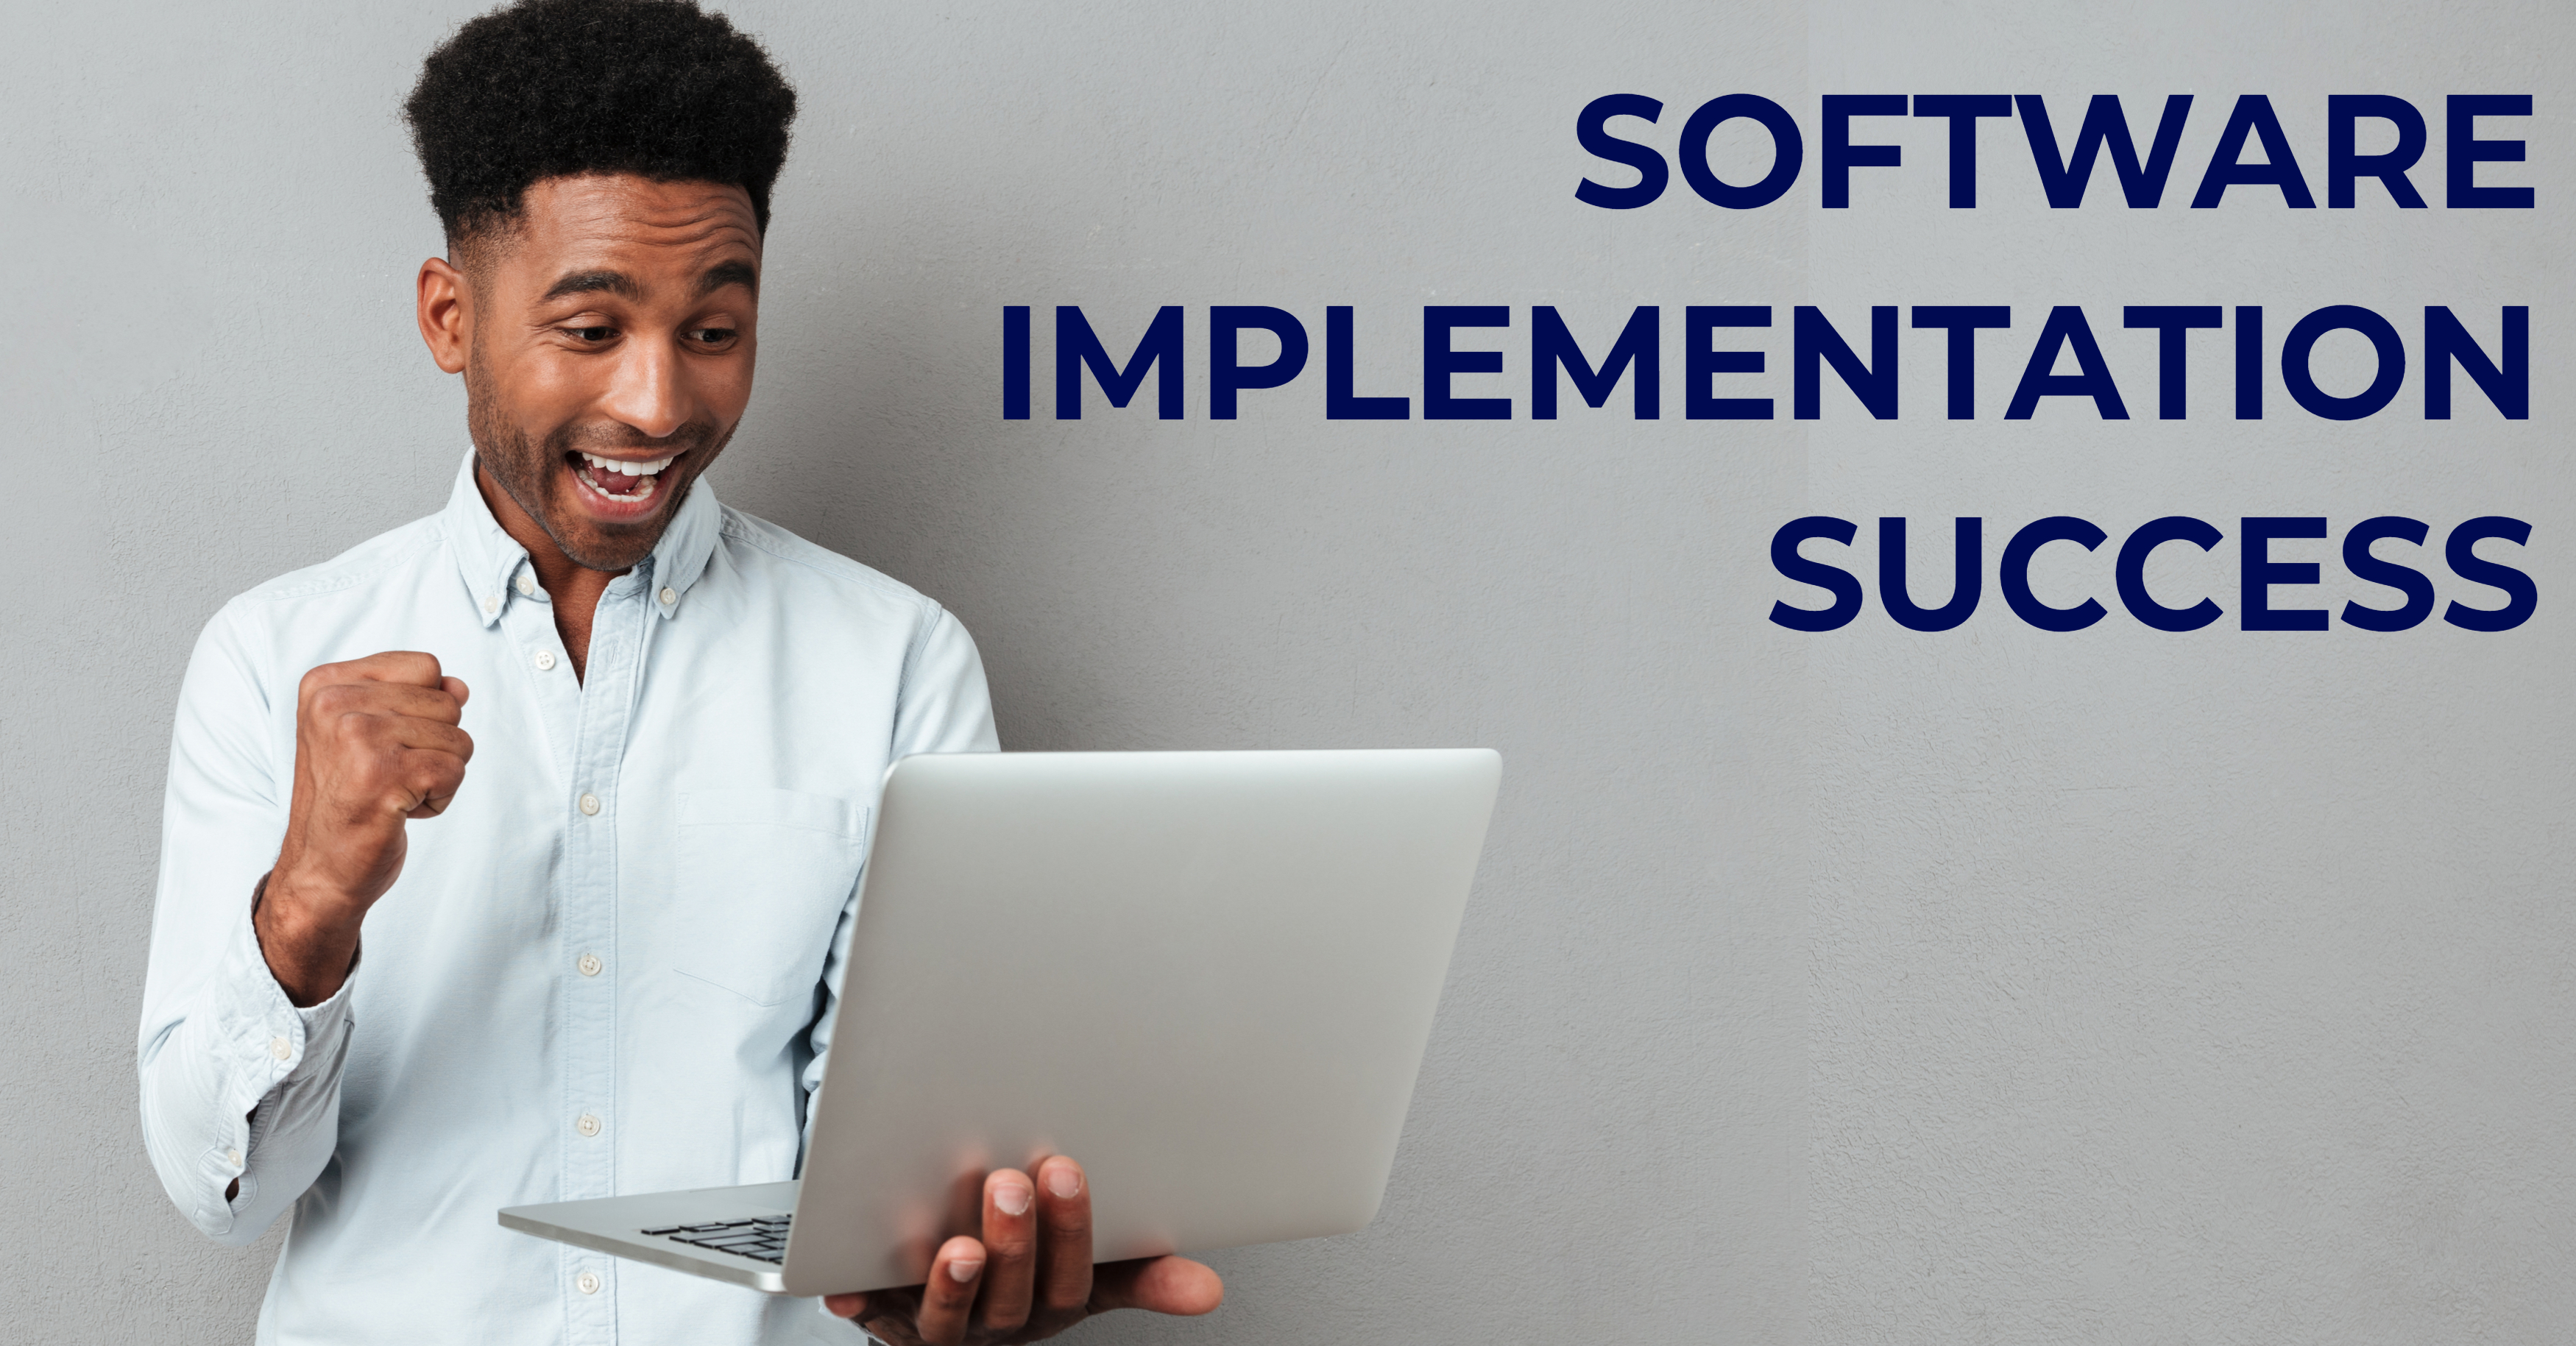 5 Keys to Software Implementation Success